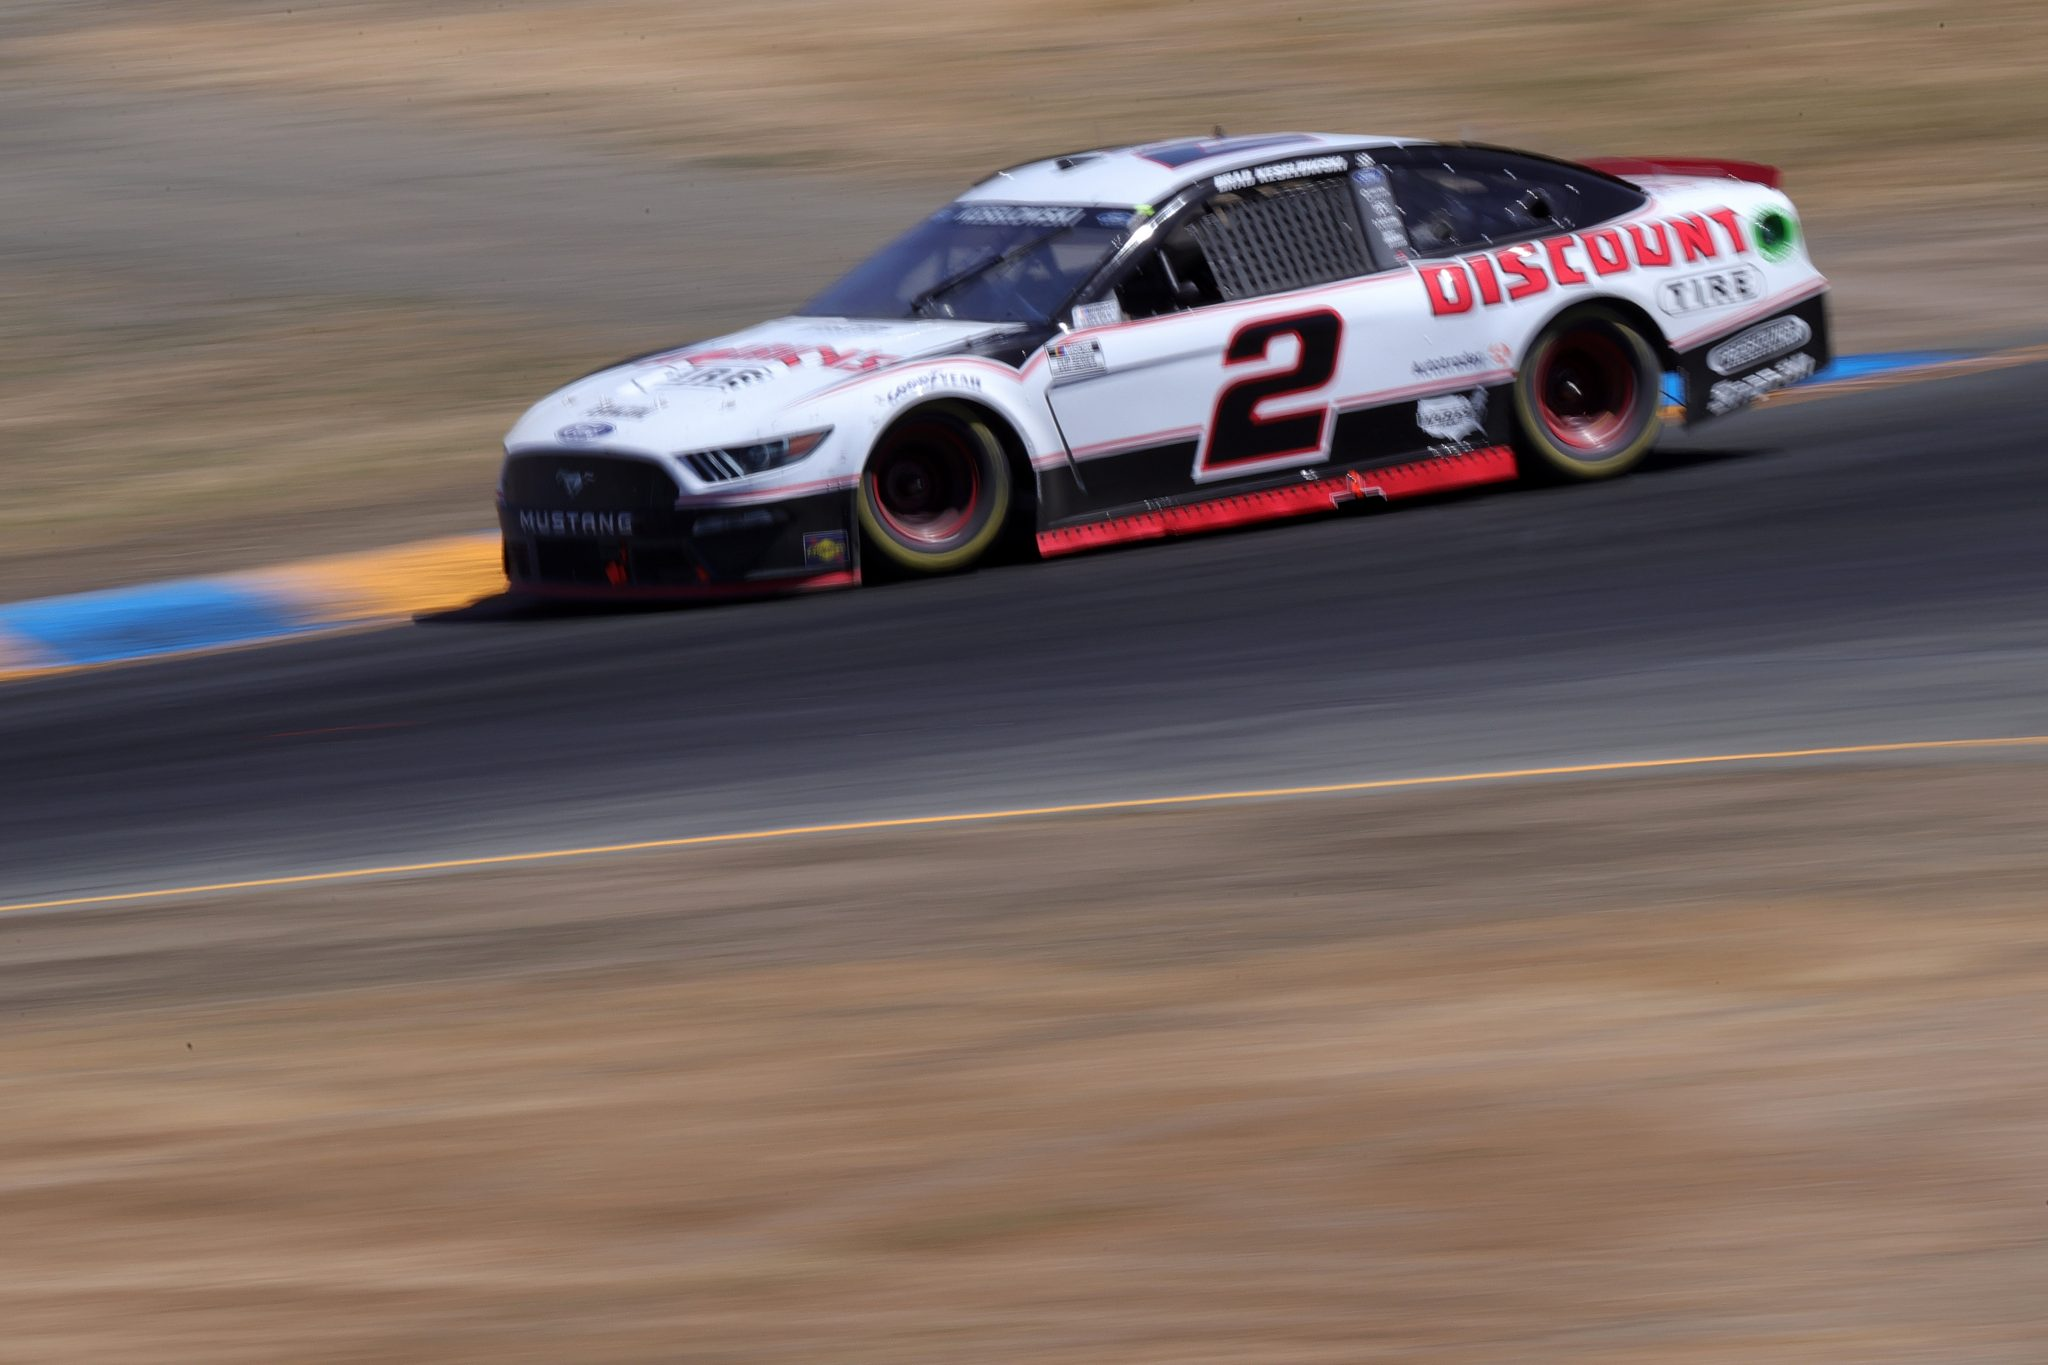 SONOMA, CALIFORNIA - JUNE 06: Brad Keselowski, driver of the #2 America's Tire Ford, drives during the NASCAR Cup Series Toyota/Save Mart 350 at Sonoma Raceway on June 06, 2021 in Sonoma, California. (Photo by Carmen Mandato/Getty Images) | Getty Images